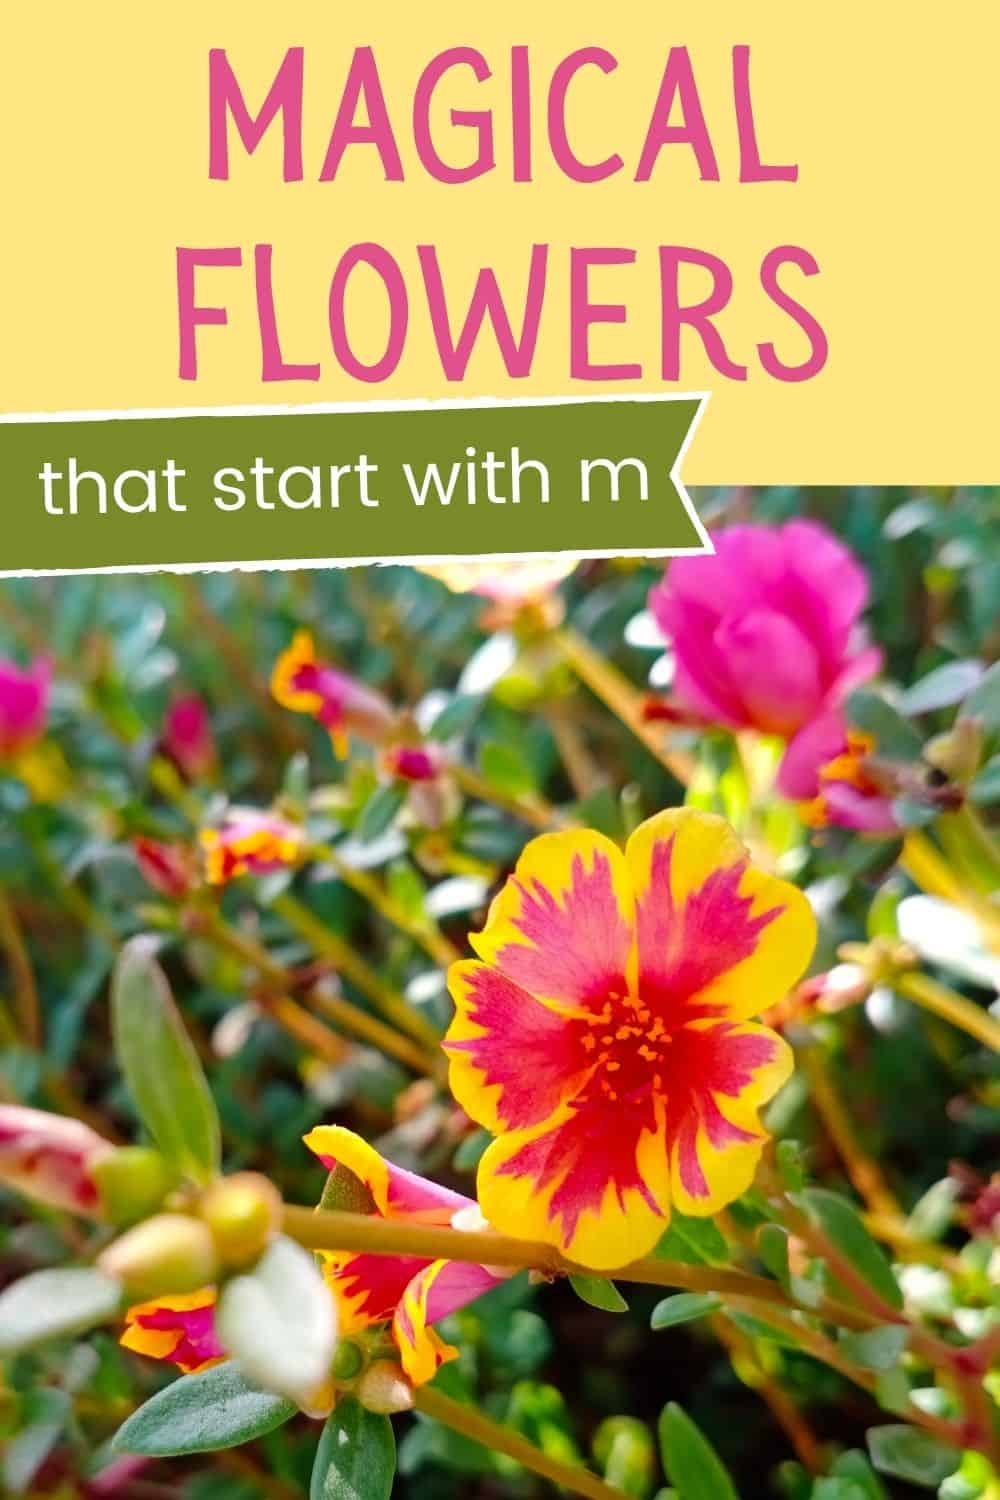 Flowers that start with m